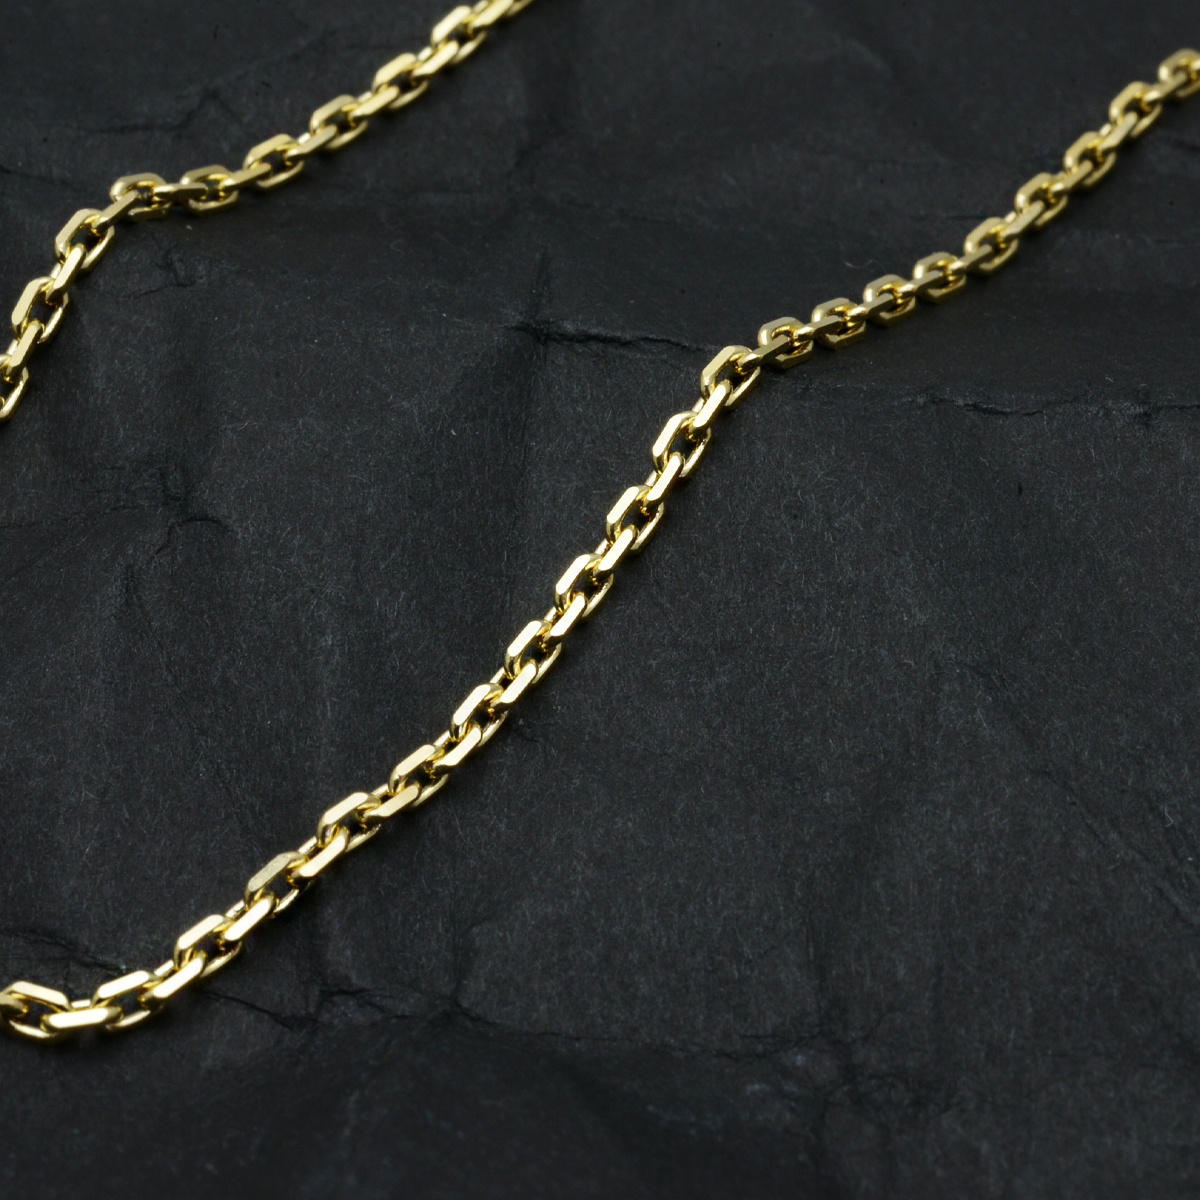 k18ネックレス K18 イエローゴールド メンズ 男性 カットアズキチェーン 幅1.5mm チェーン 40cm/ プレゼント ギフト gold necklace ach1660c40